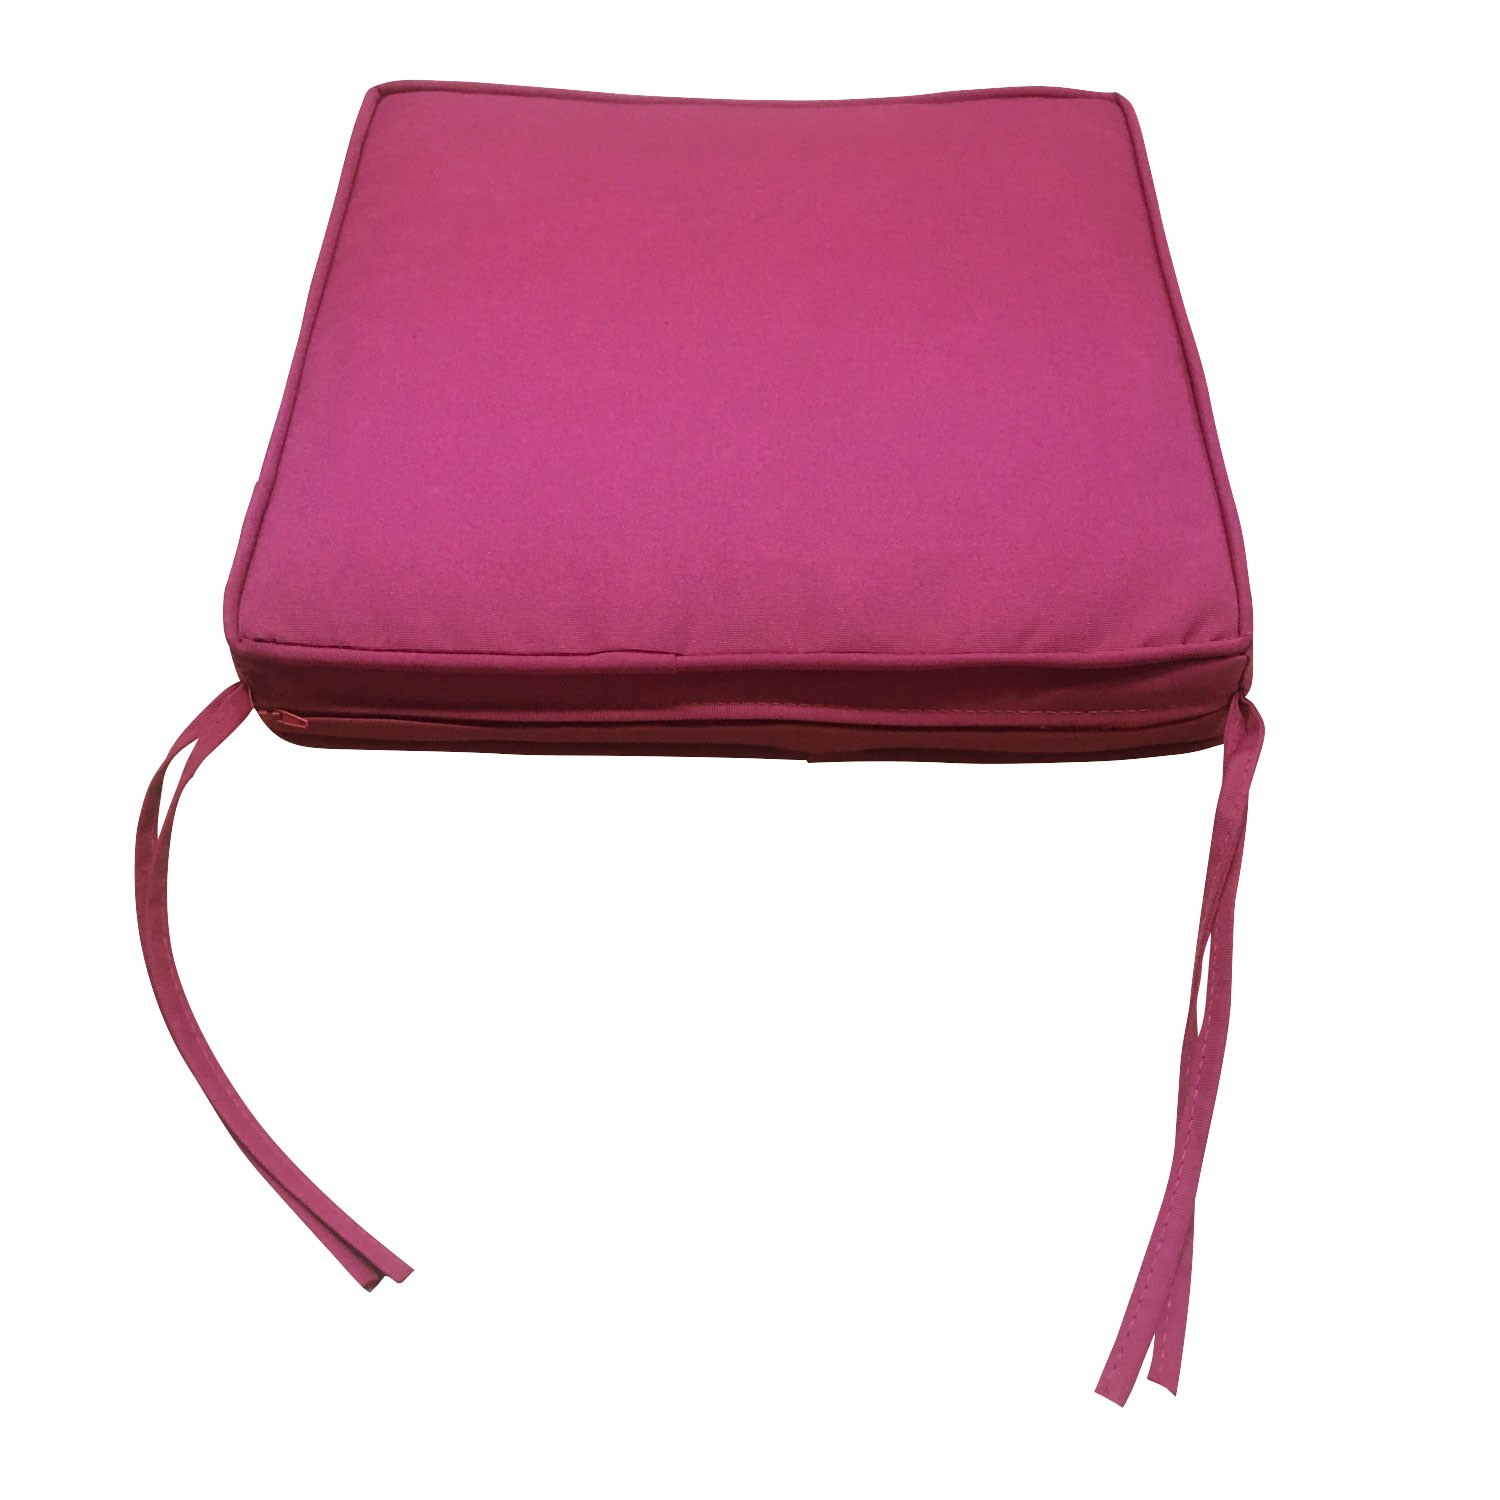 Lot de 8 coussins de chaise carré 40x40cm fuchsia